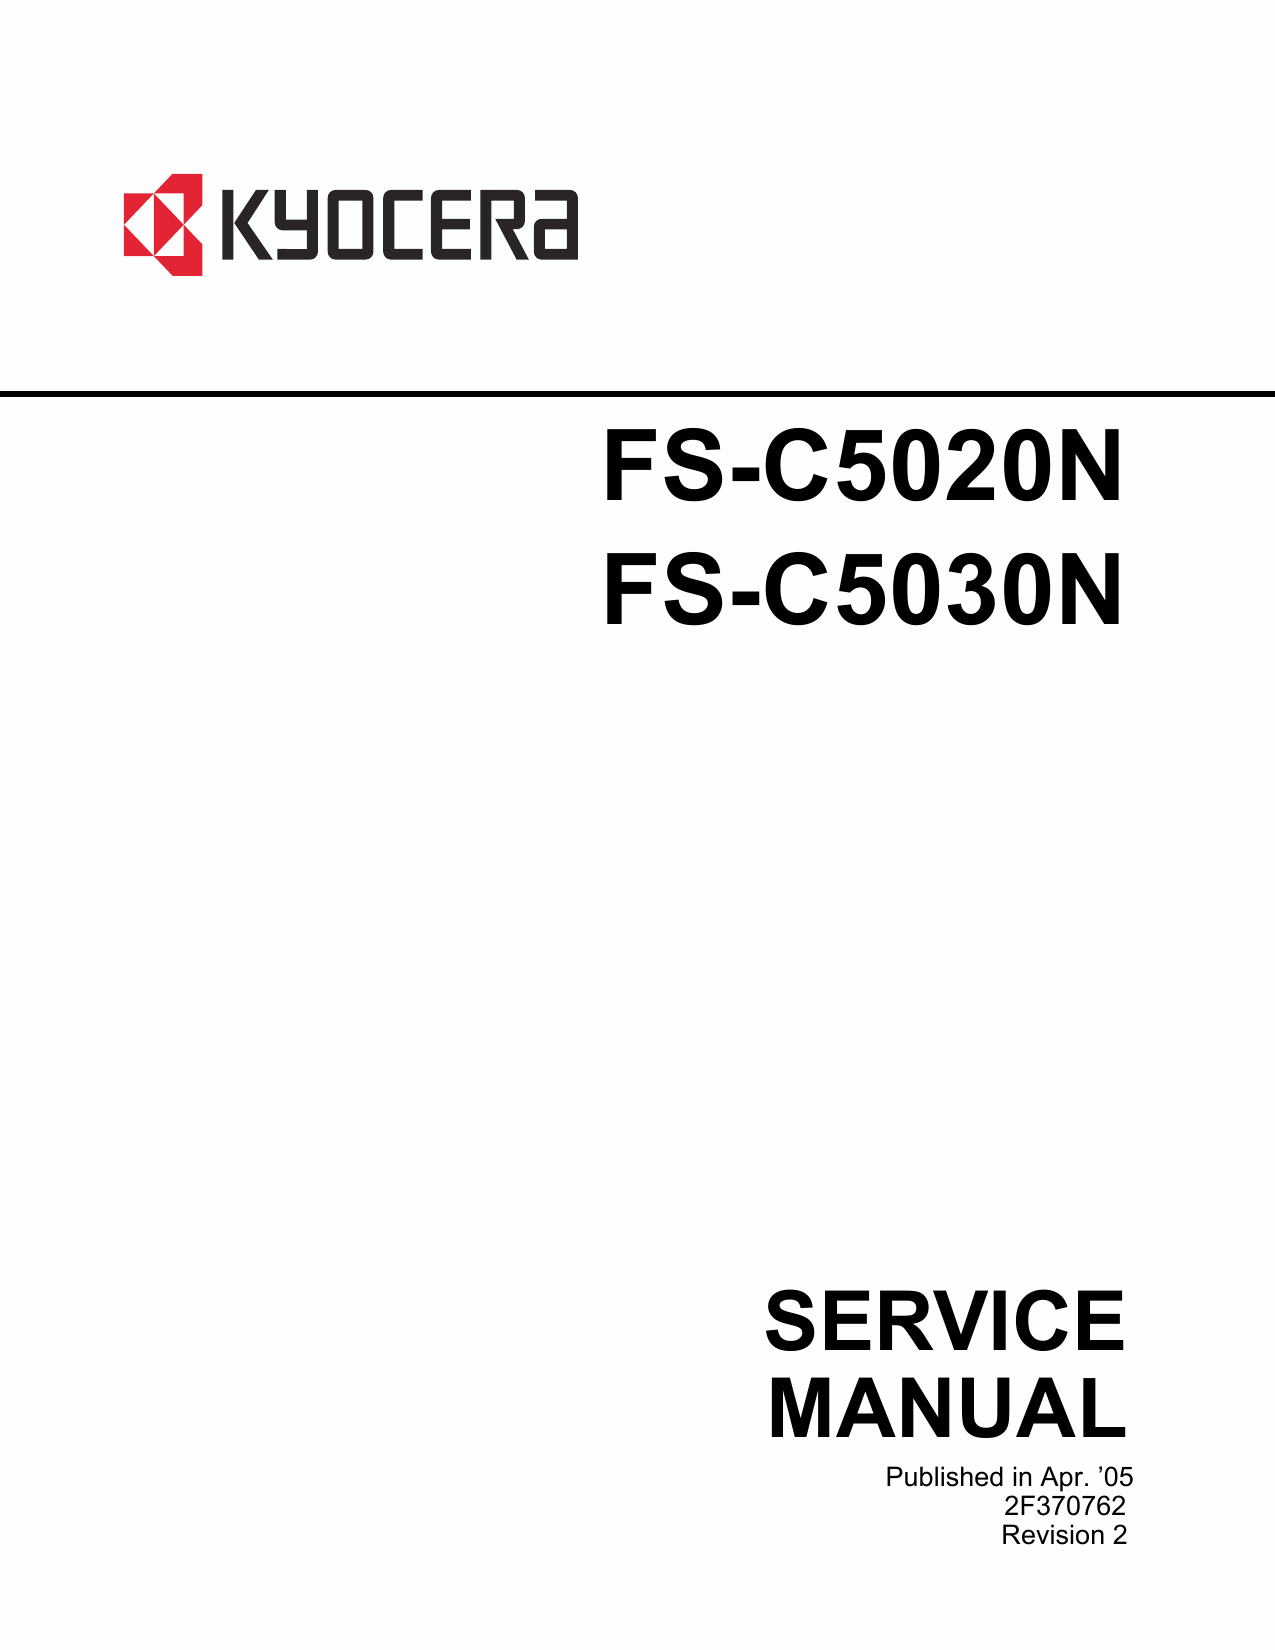 KYOCERA ColorLaserPrinter FS-C5020N C5030N Parts and Service Manual-1